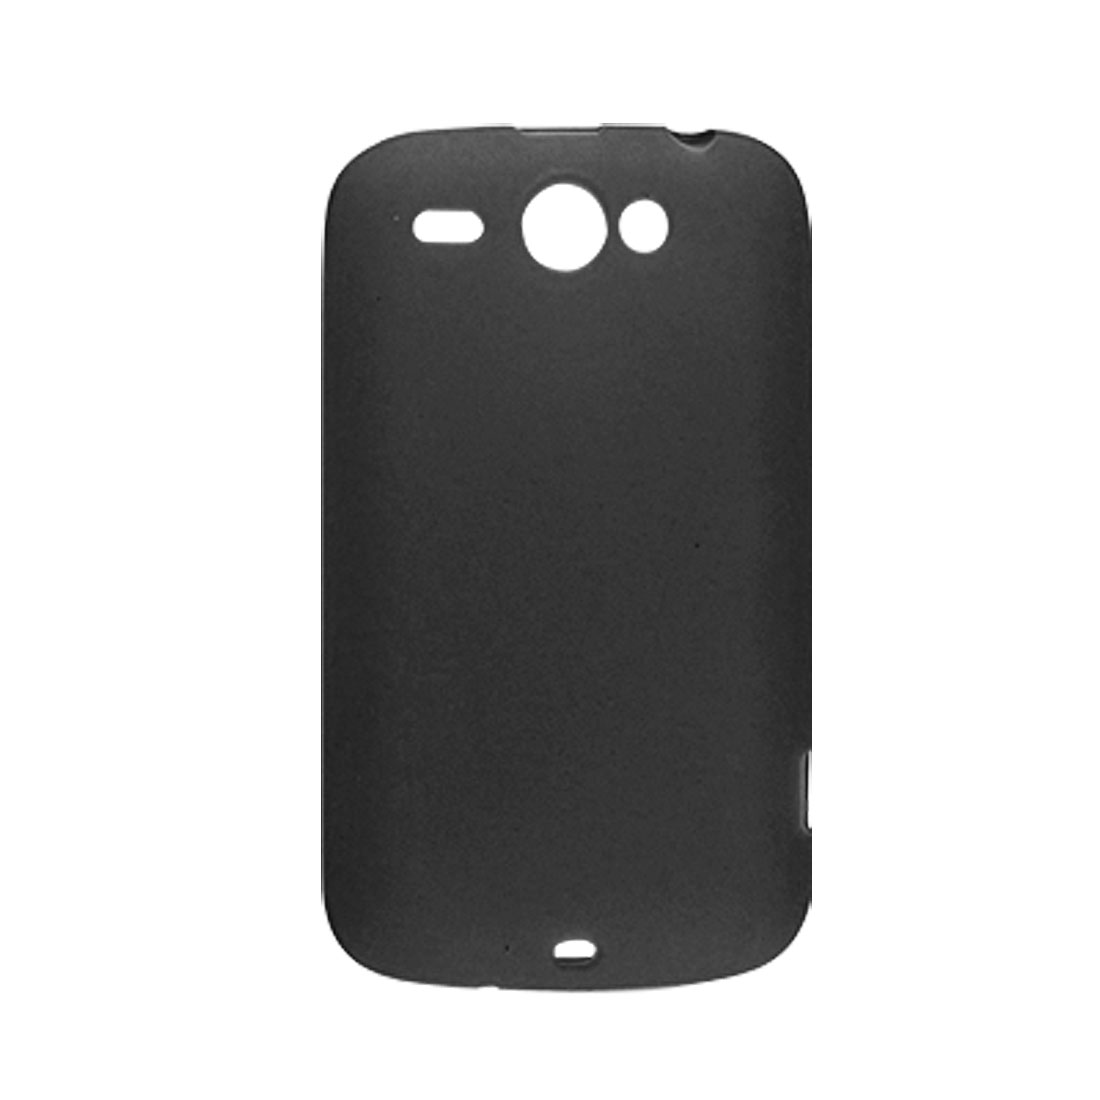 Black Soft Plastic Case for HTC Wildfire G8